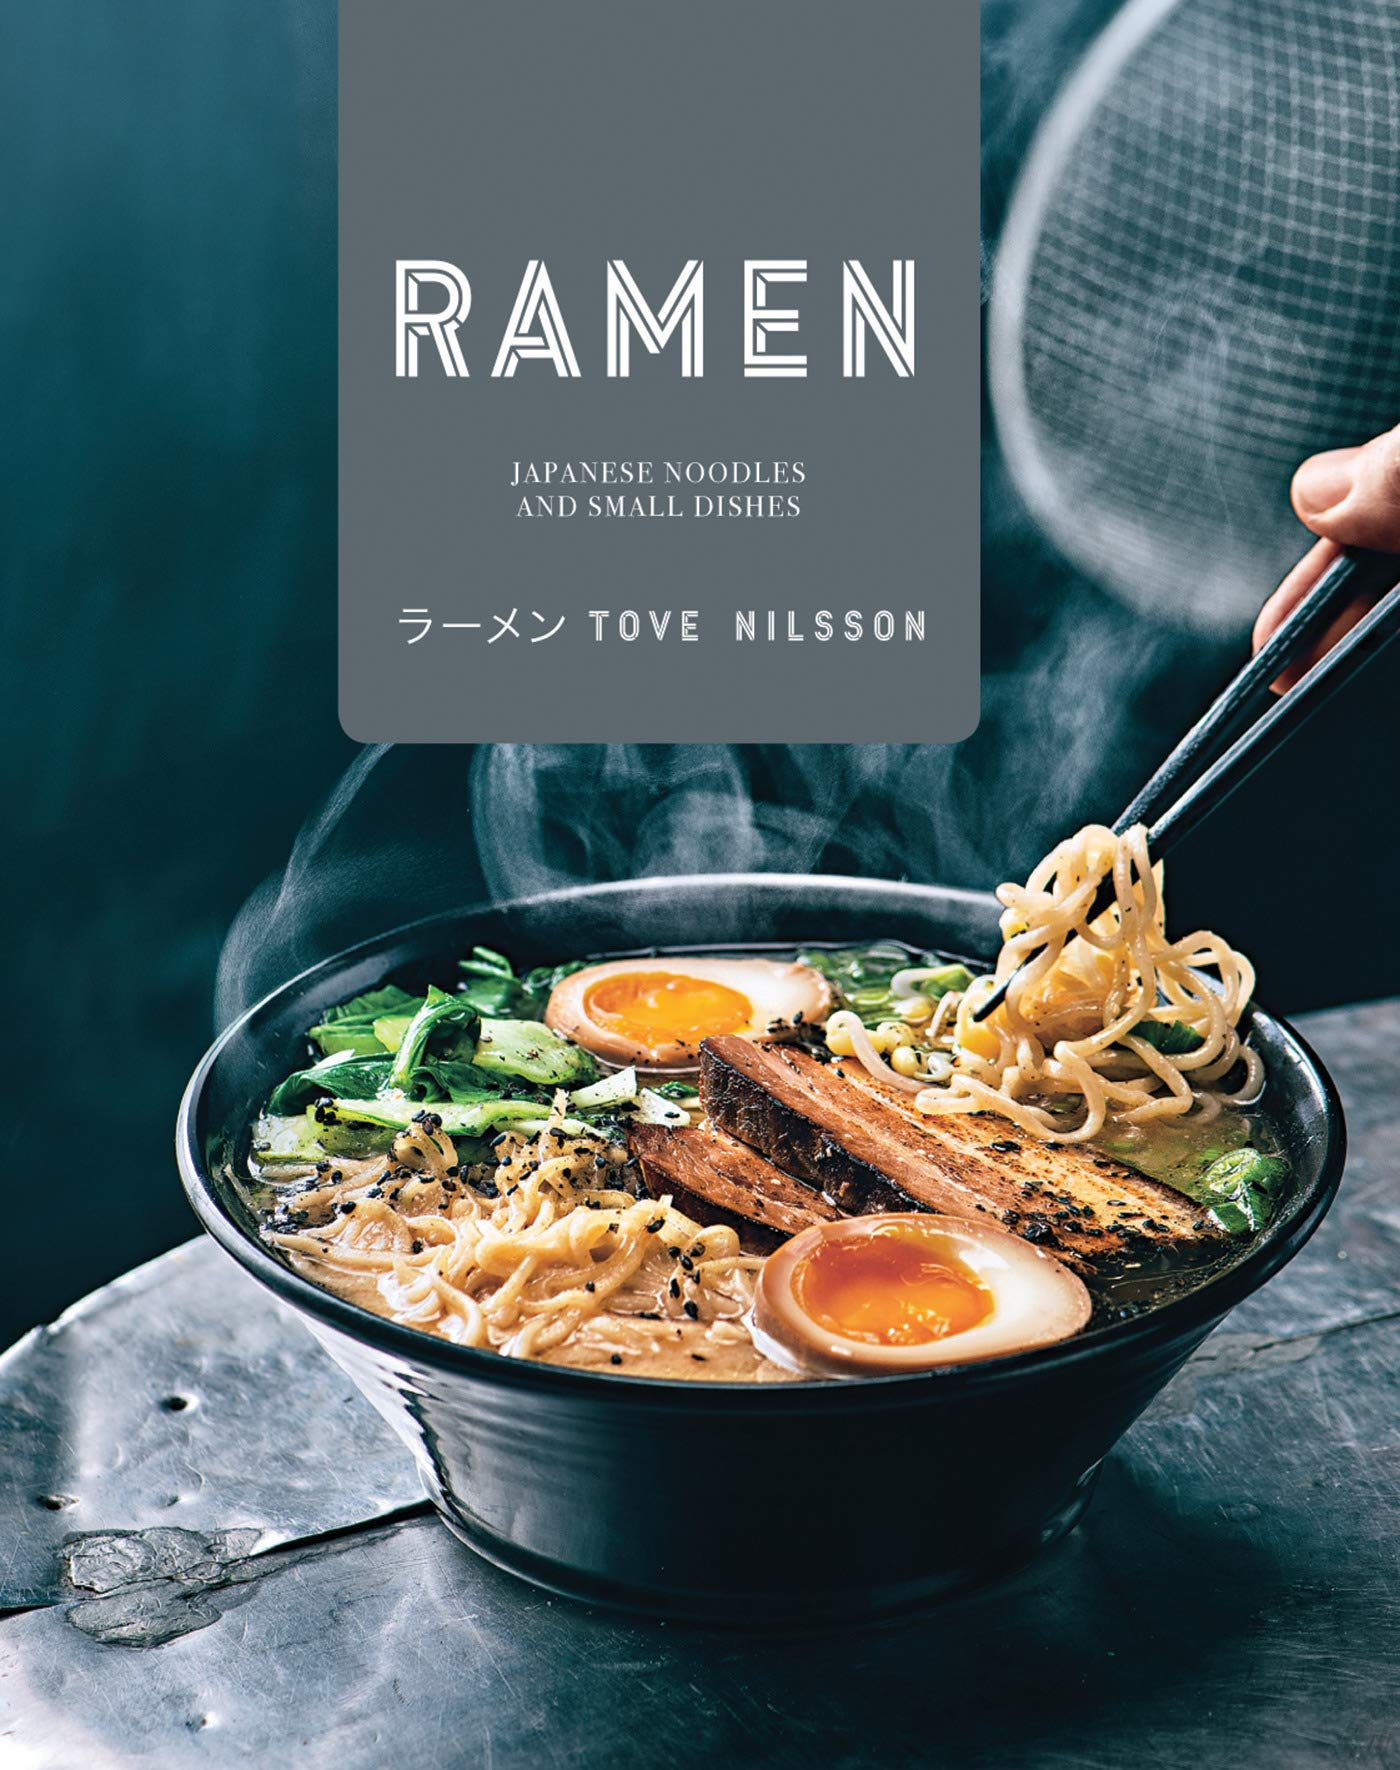 Ramen Japanese Noodles Small Dishes Japanese Noodles And Small Dishes Amazon Co Uk Tove Nilsson 9781911216445 Books